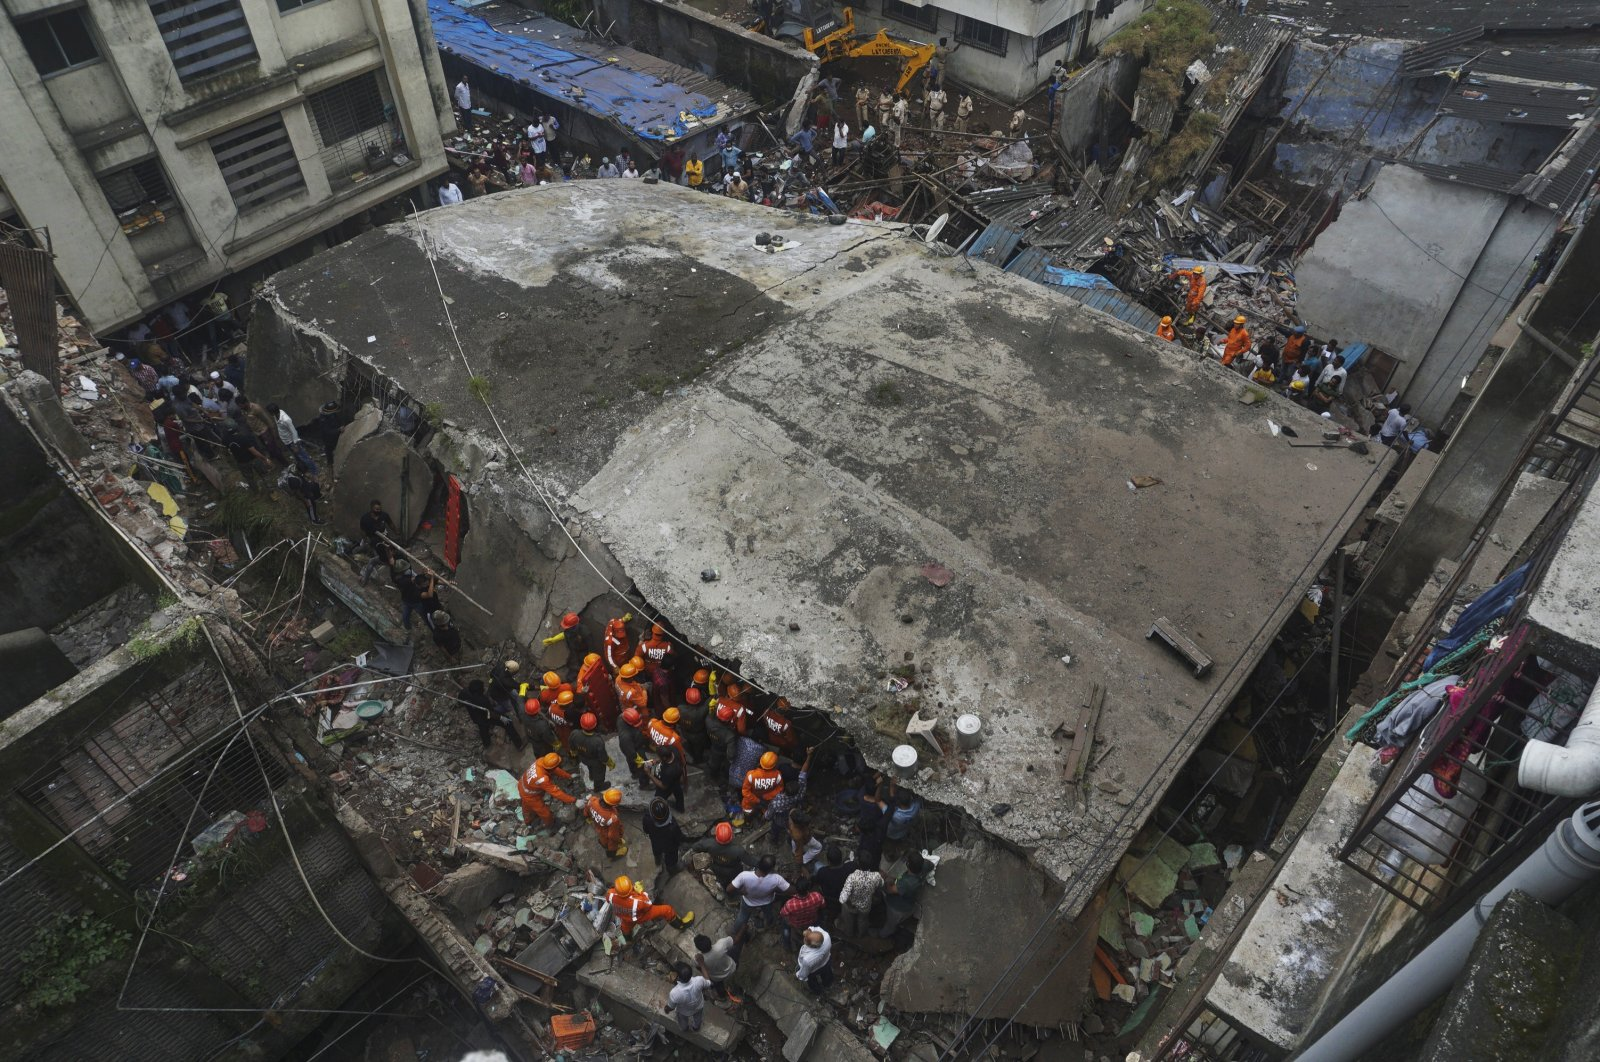 Rescuers look for survivors after a residential building collapsed in Bhiwandi in Thane district, a suburb of Mumbai, India, Sept. 21, 2020. (AP Photo)